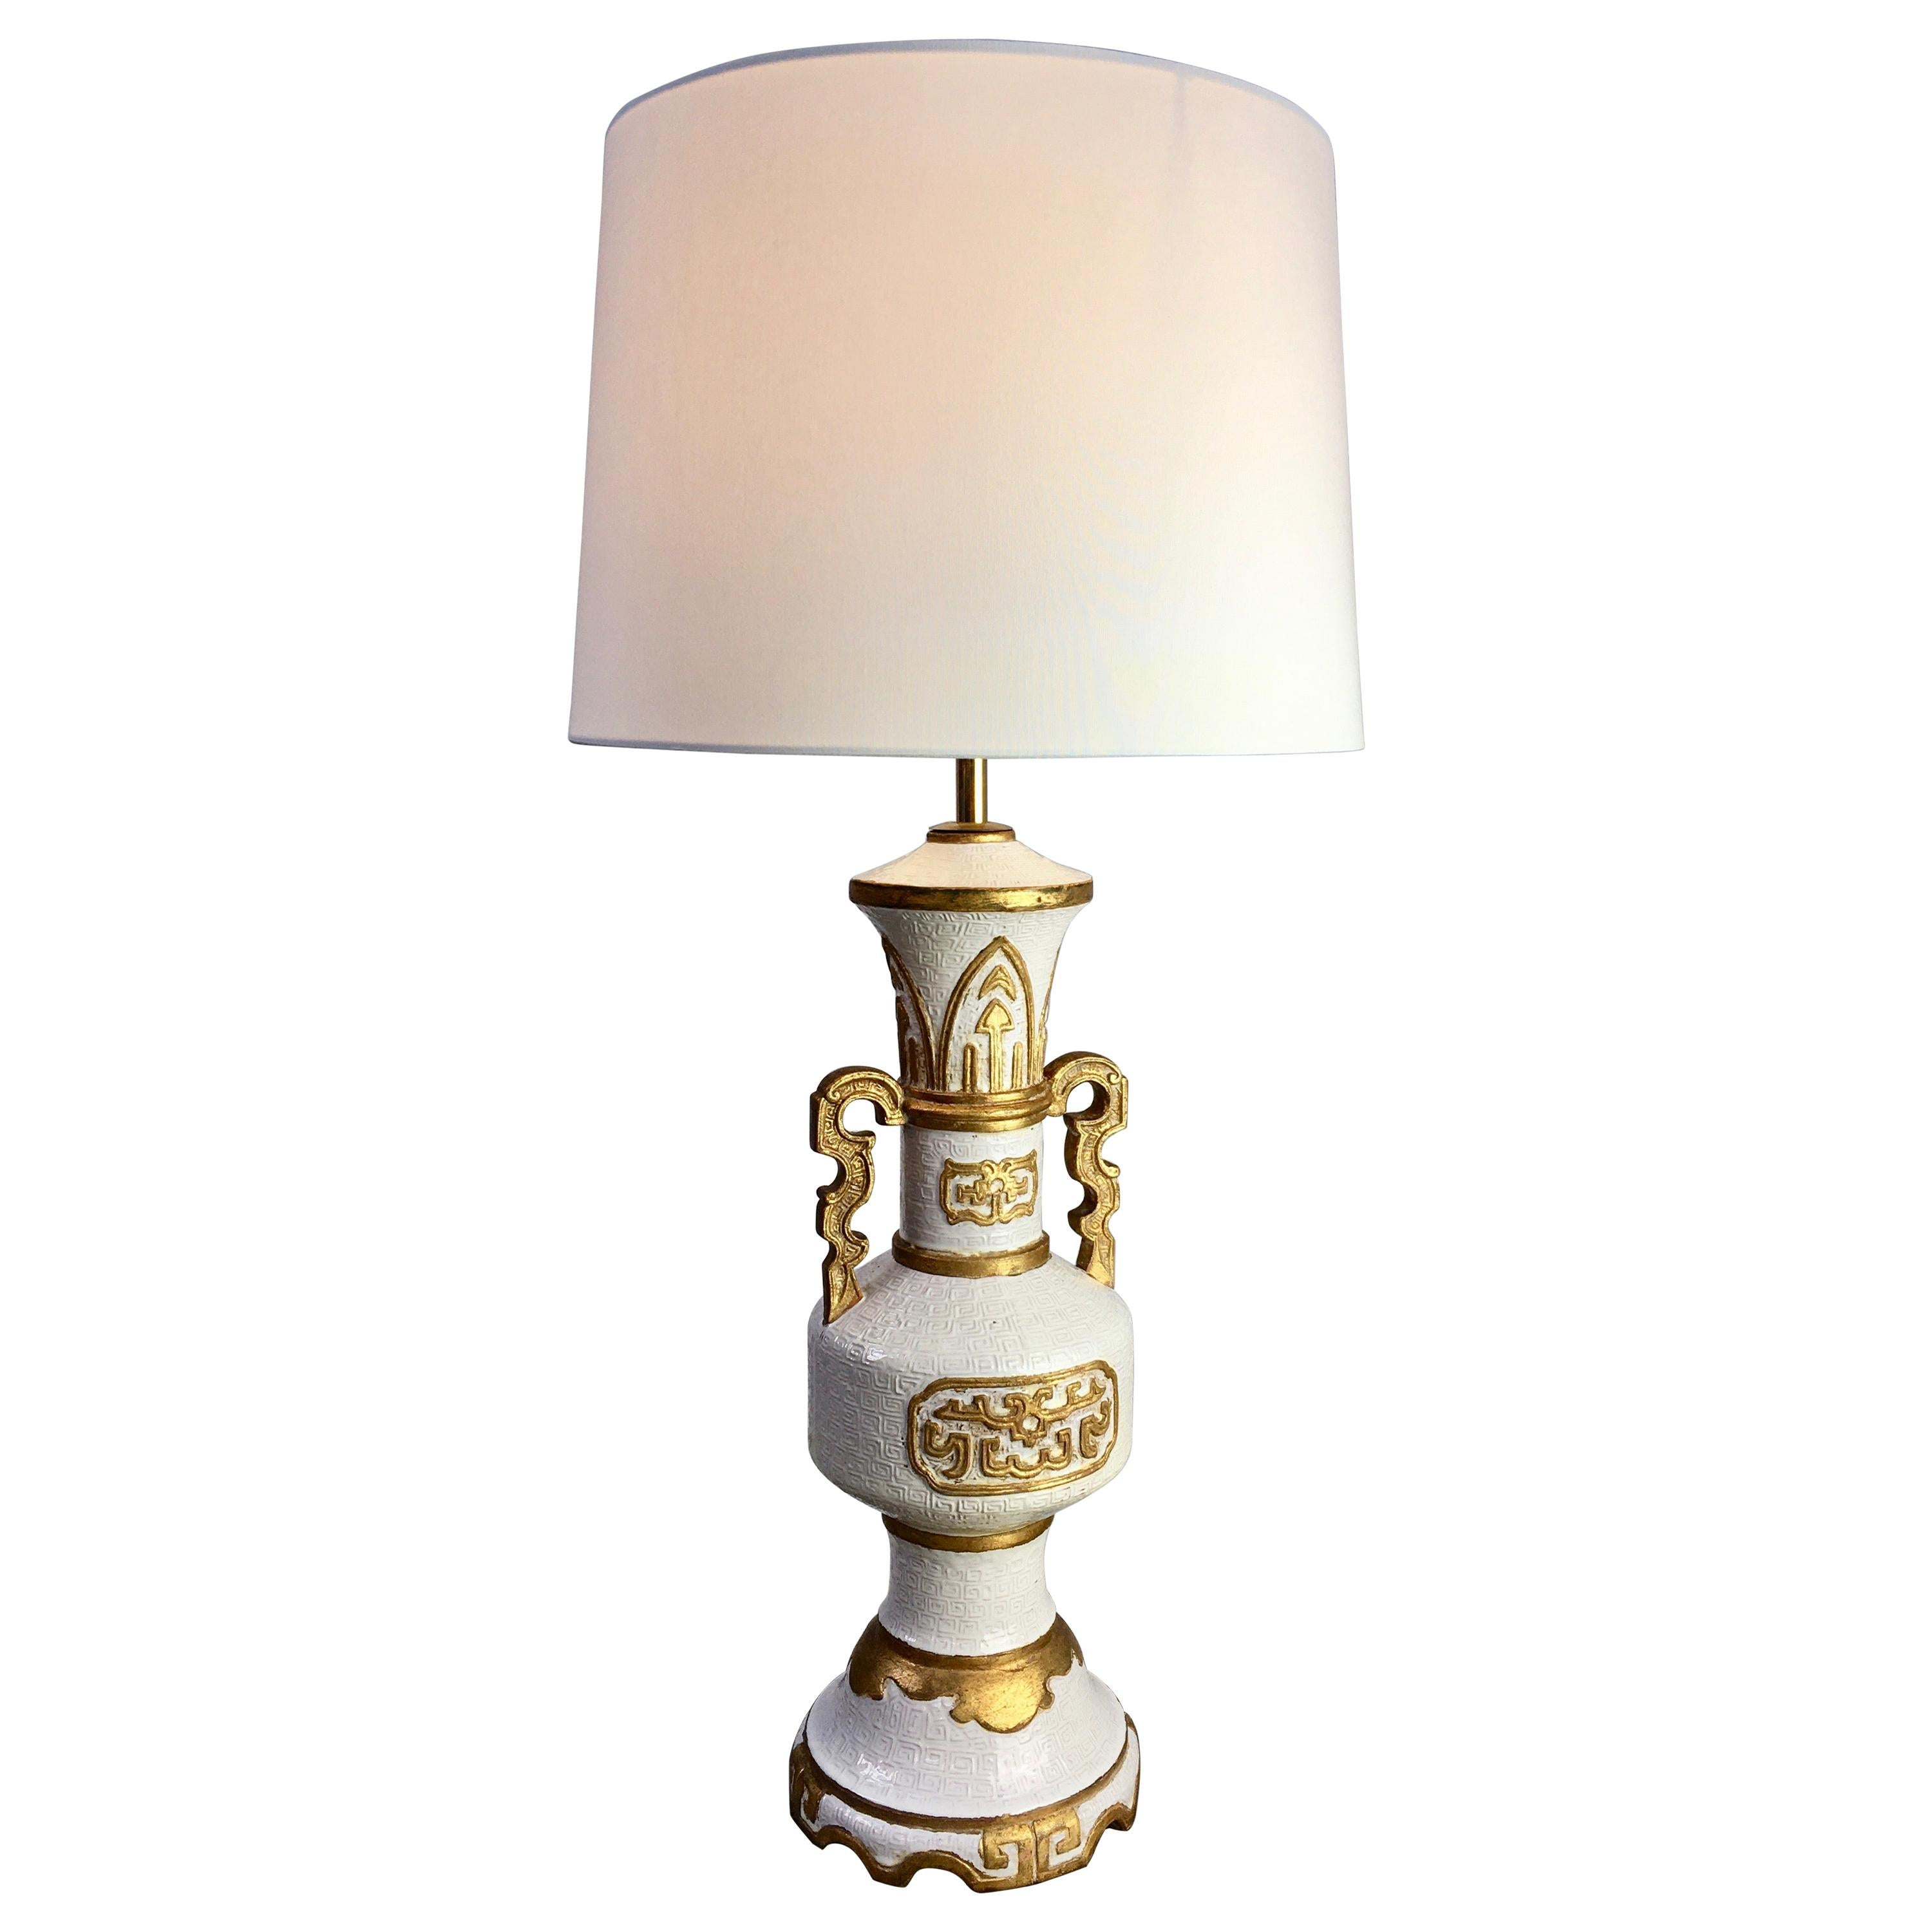 Zaccagnini Lamp in White with Gold Leaf, Italy, 1950s